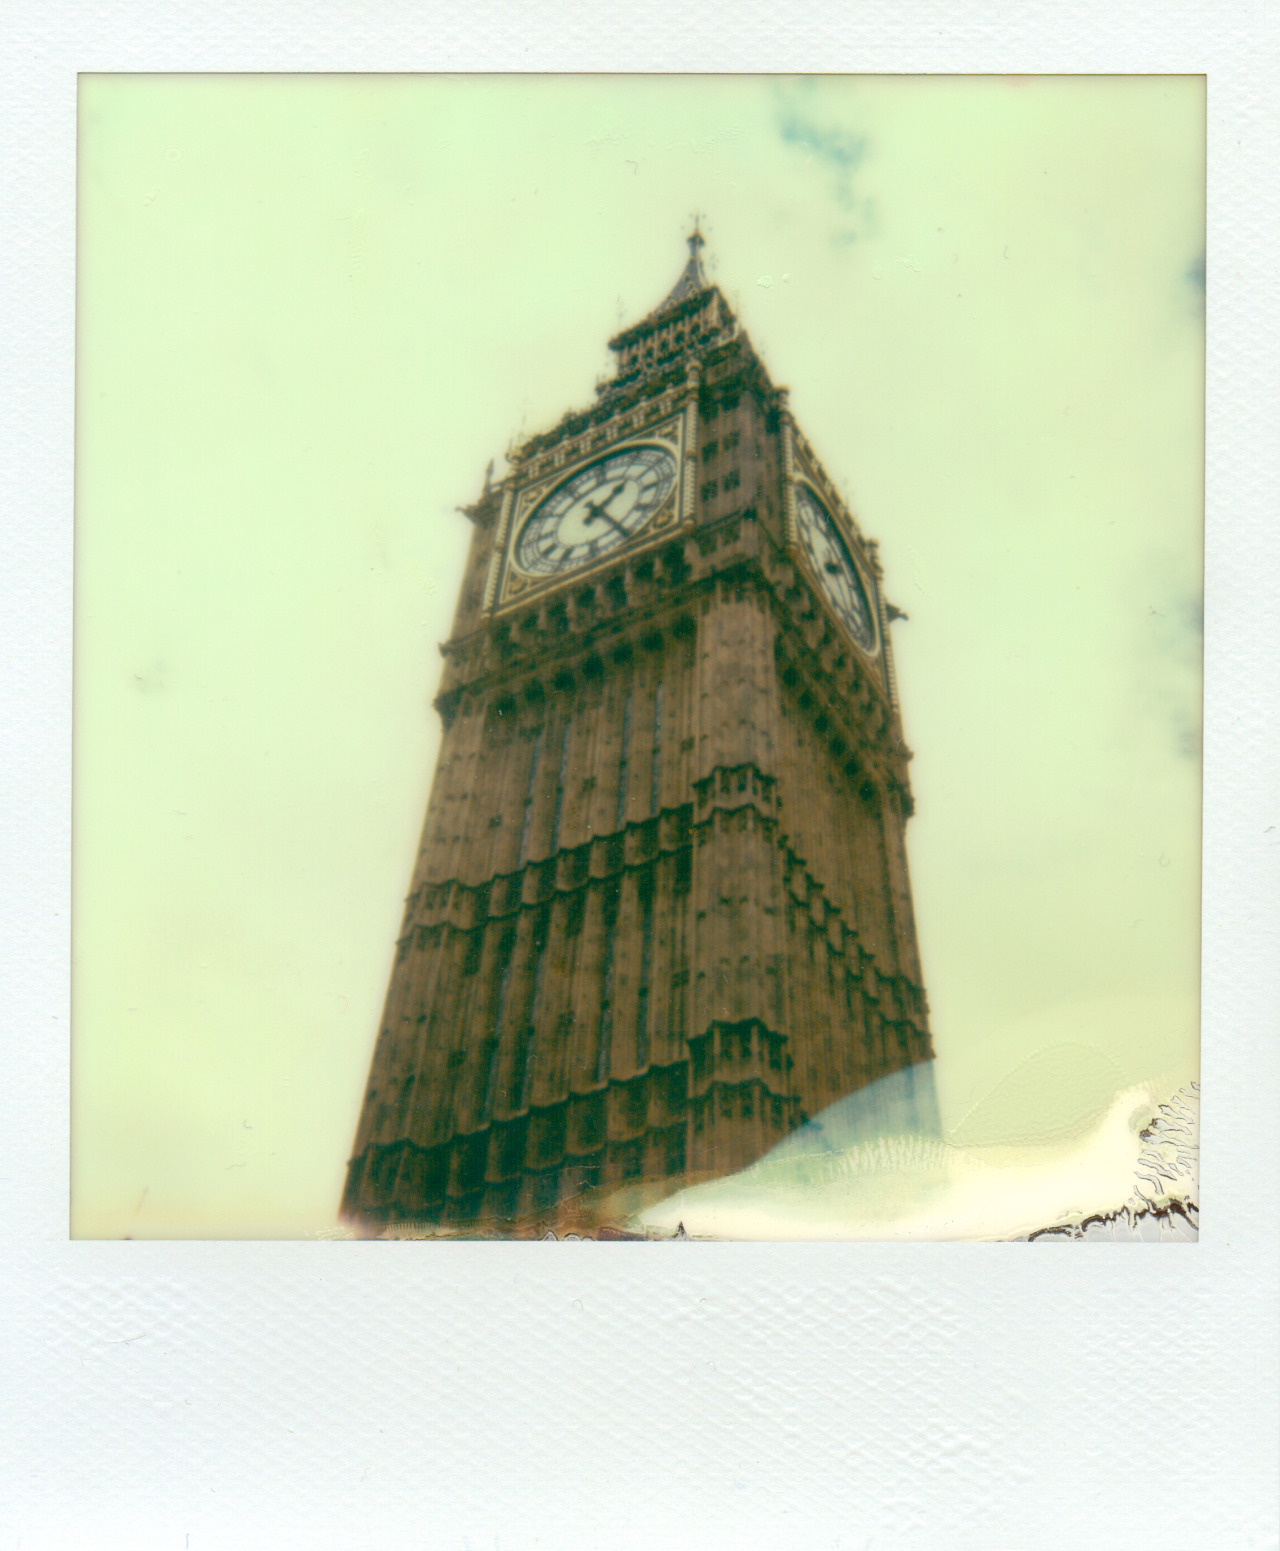 Big Ben Polaroid - Apr 27th